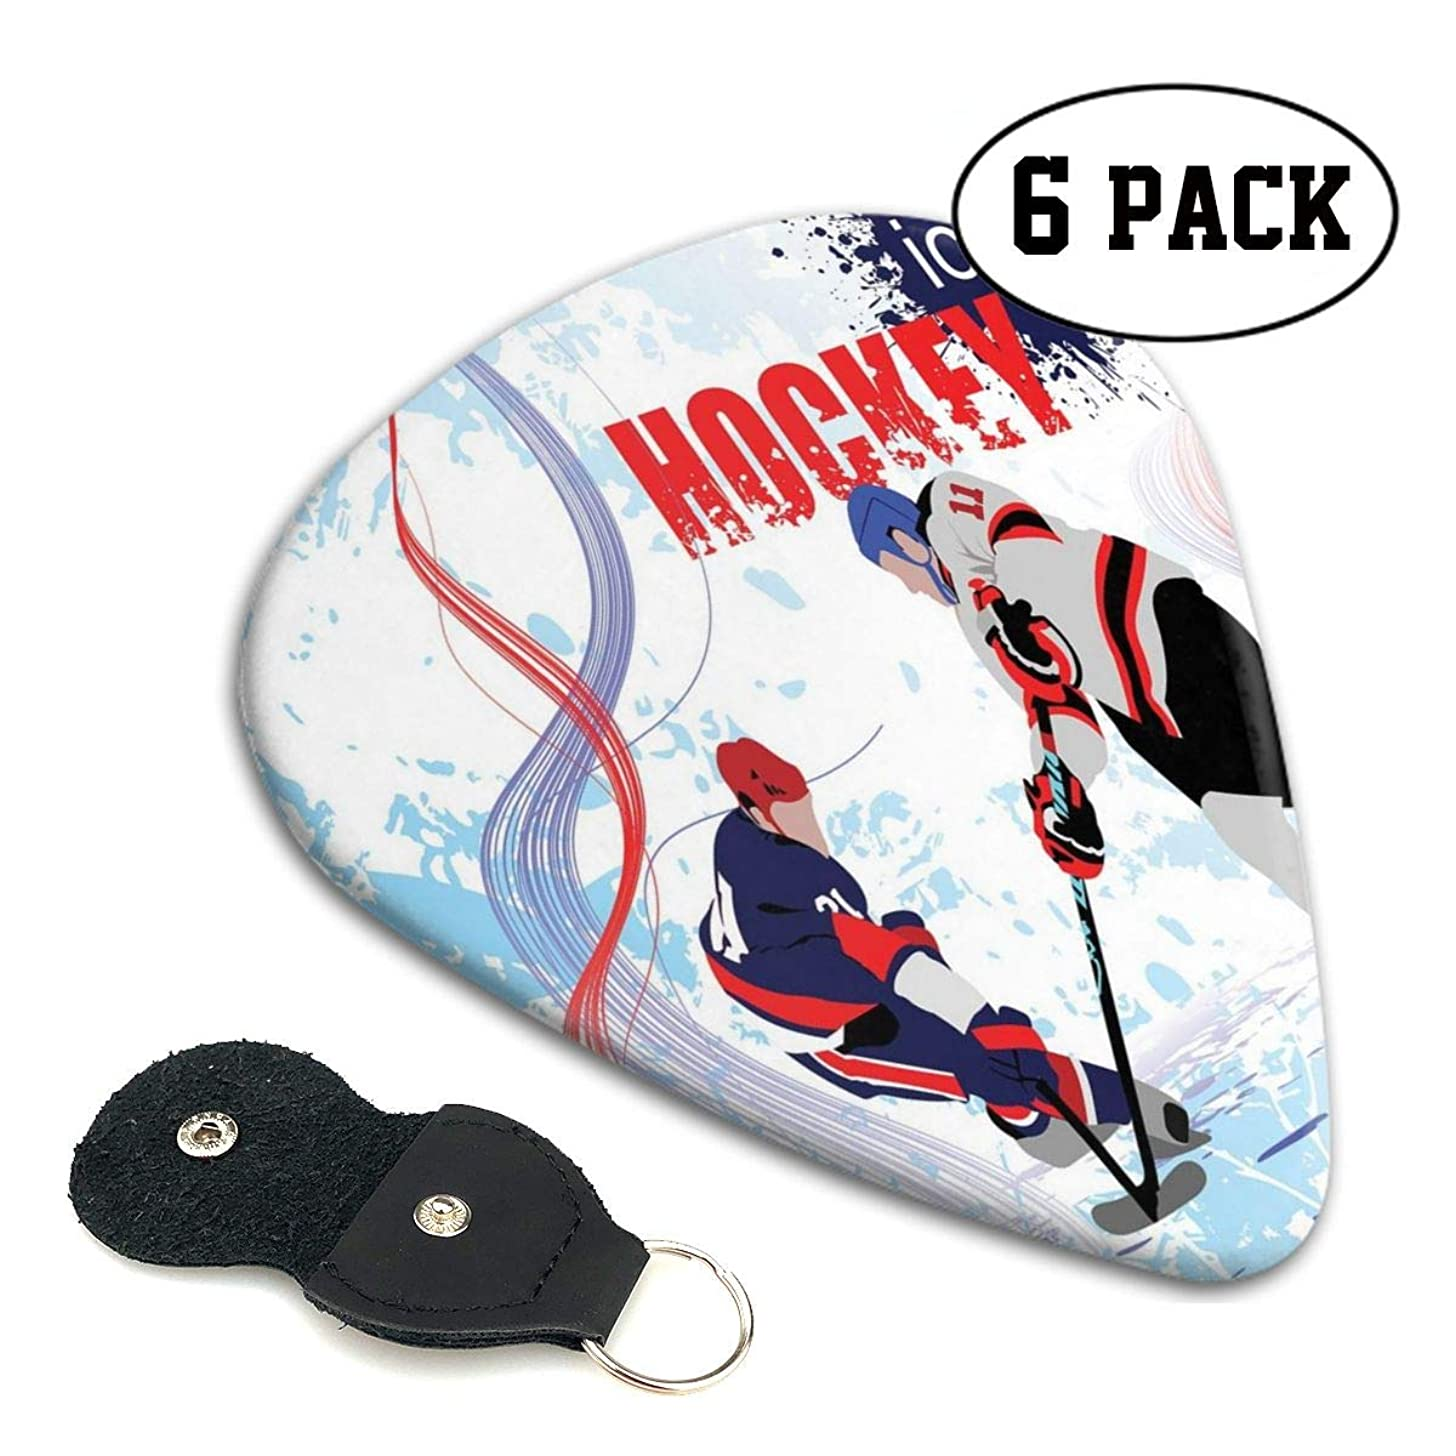 Guitar Picks 6 pcs,Two Ice Hockey Players In Cartoon Style On Grunge Abstract Skating Rink Backdrop